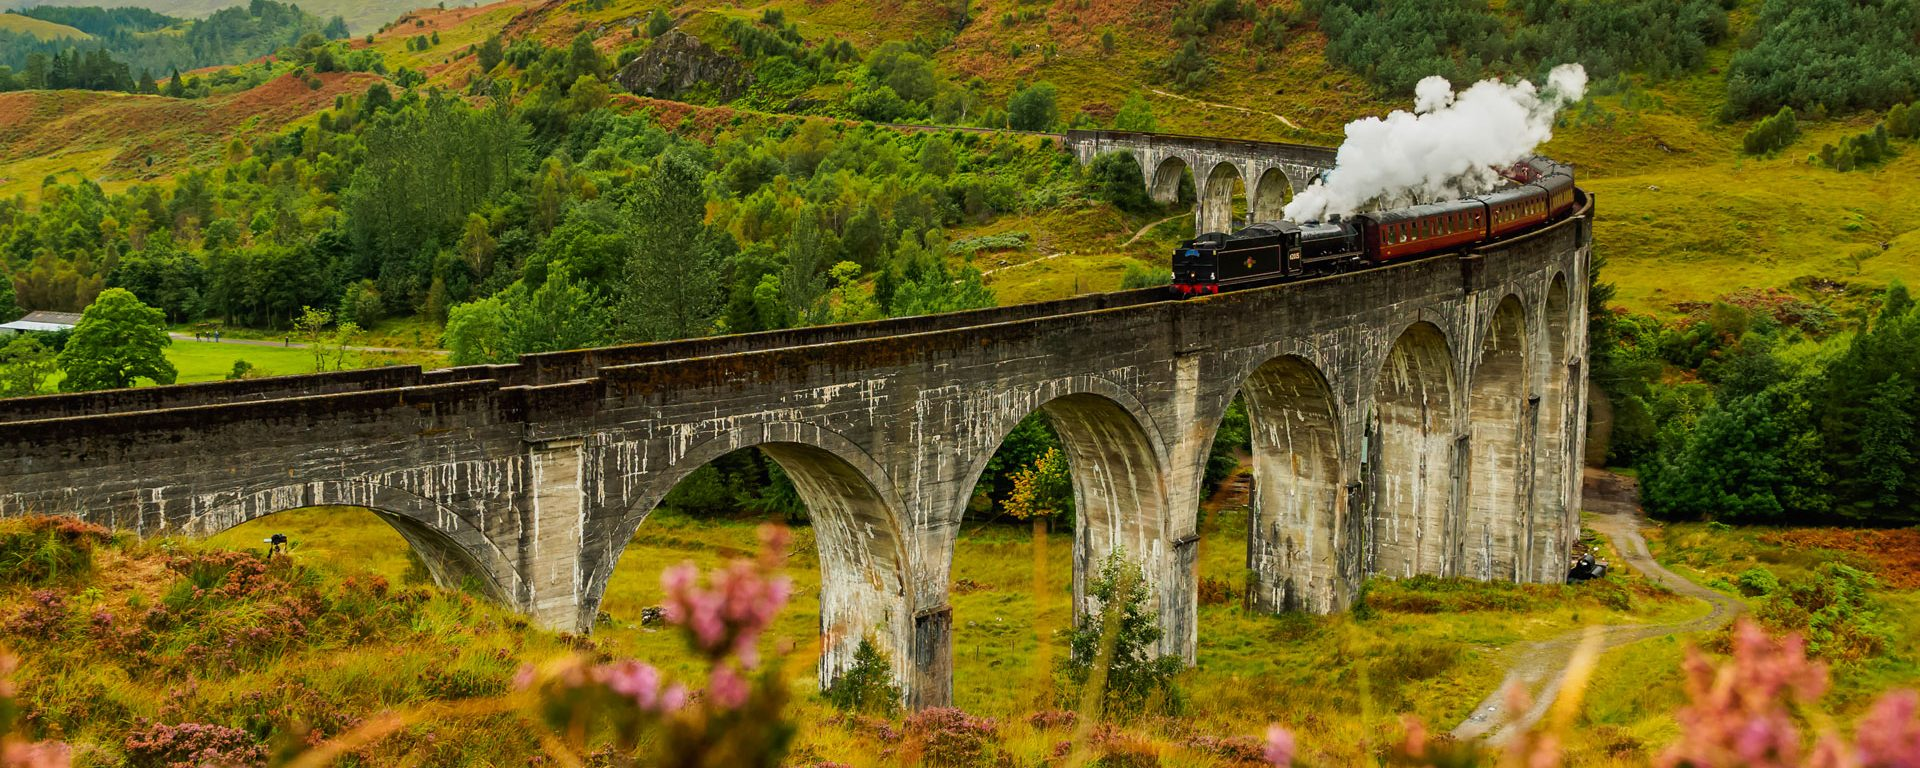 Jacobite Steam Train crossing the Glenfinnan Viaduct in Scotland, Highlands, UK